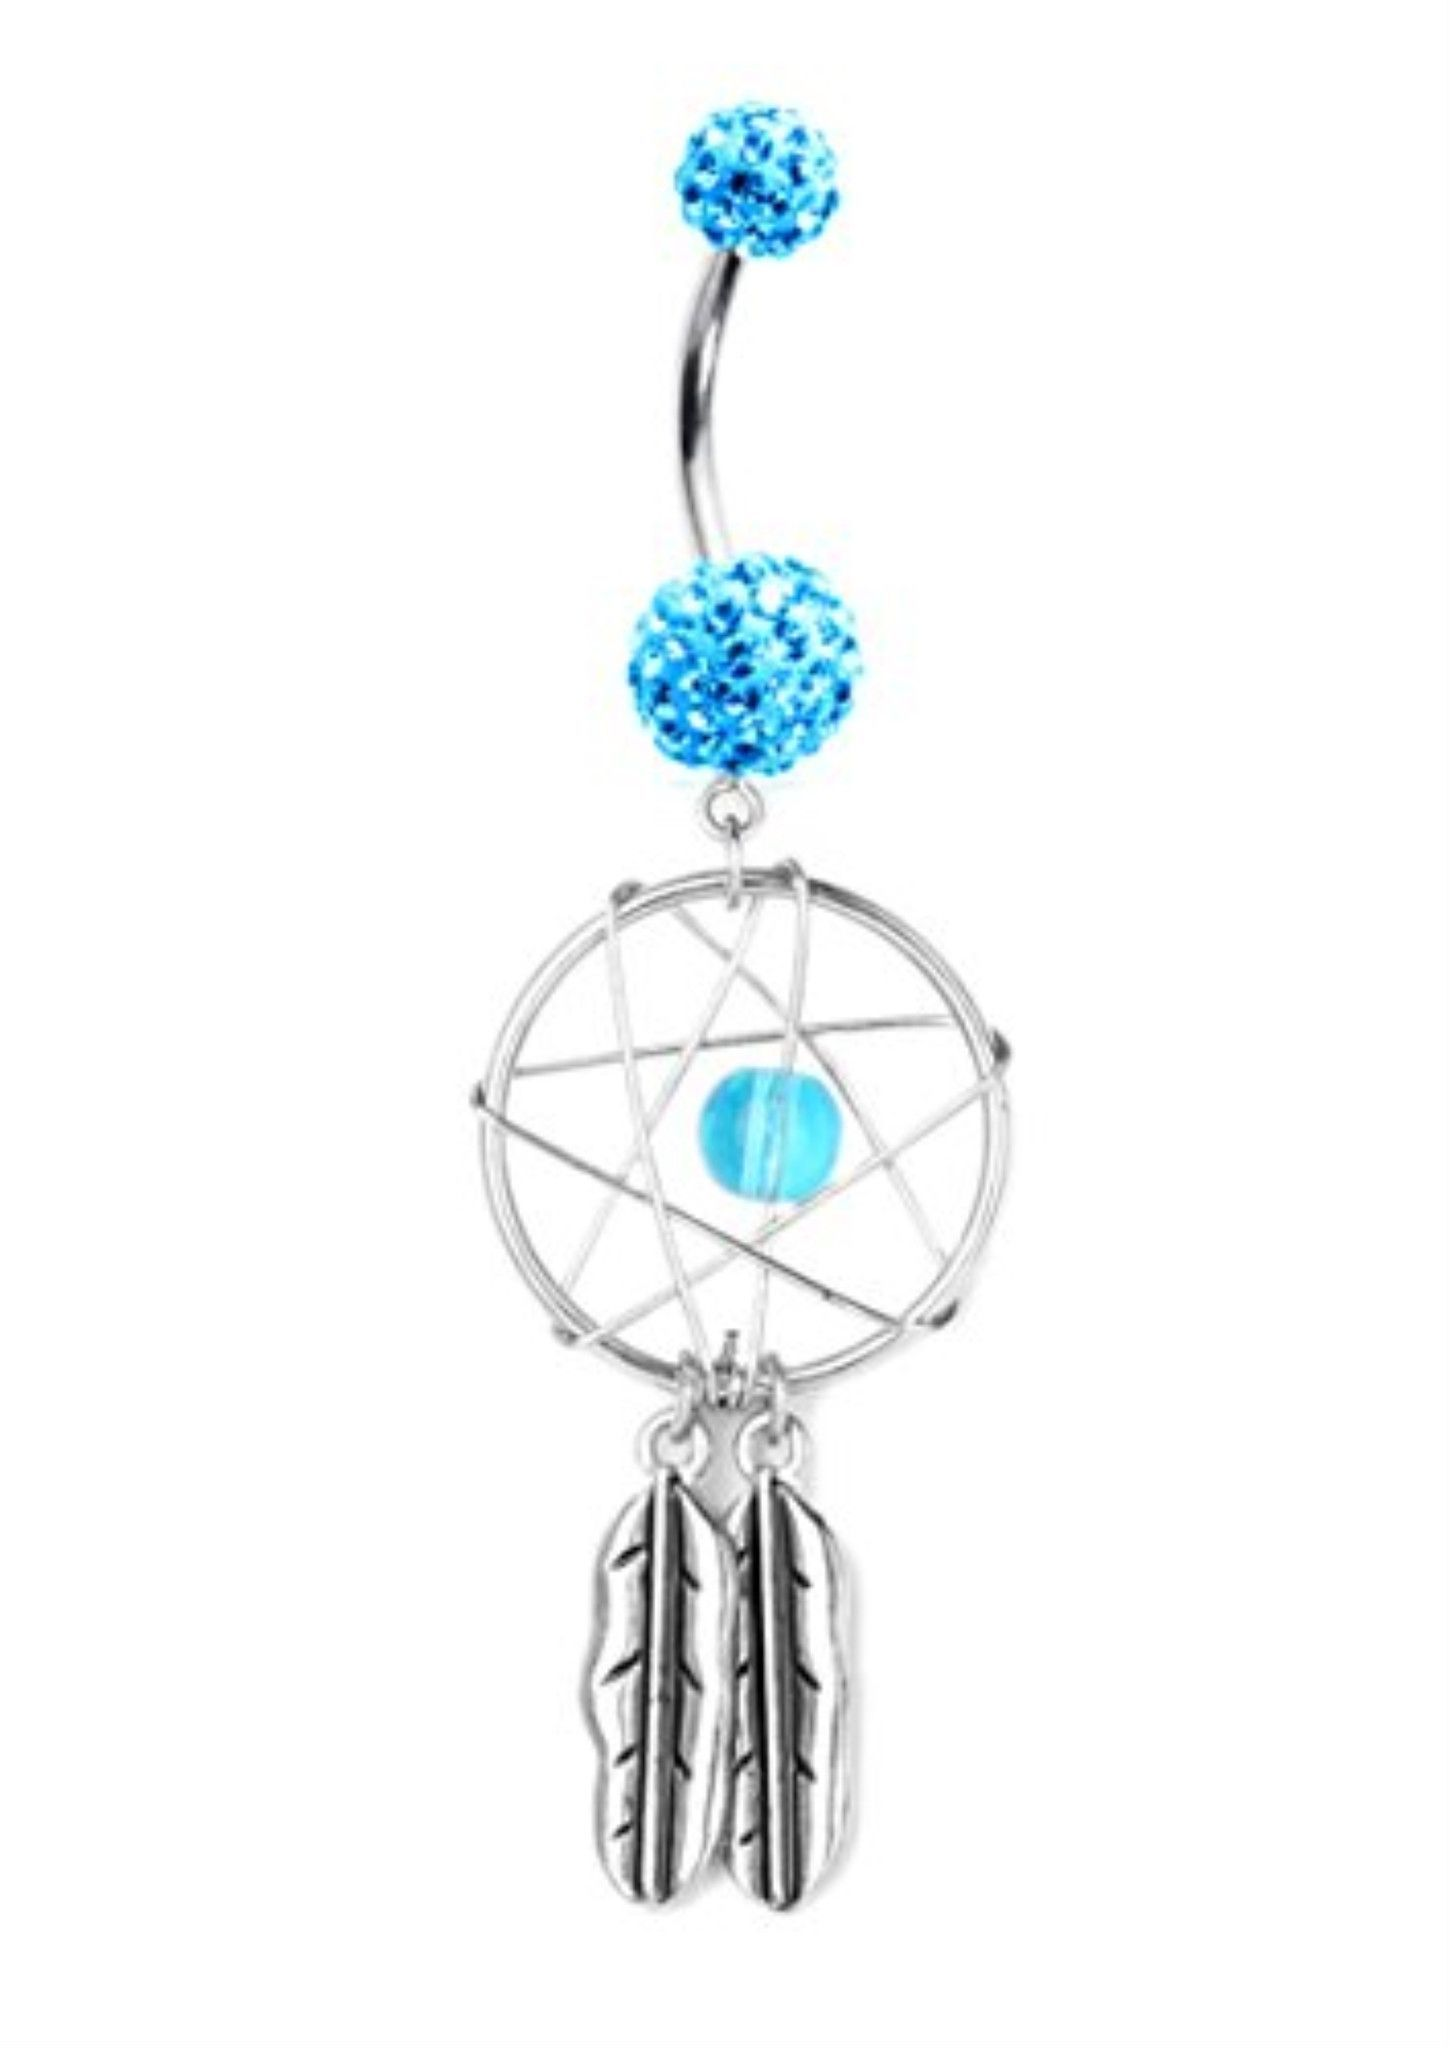 Long belly piercing  Aqua Crystal Evolution Dreamcatcher Belly Ring  Products